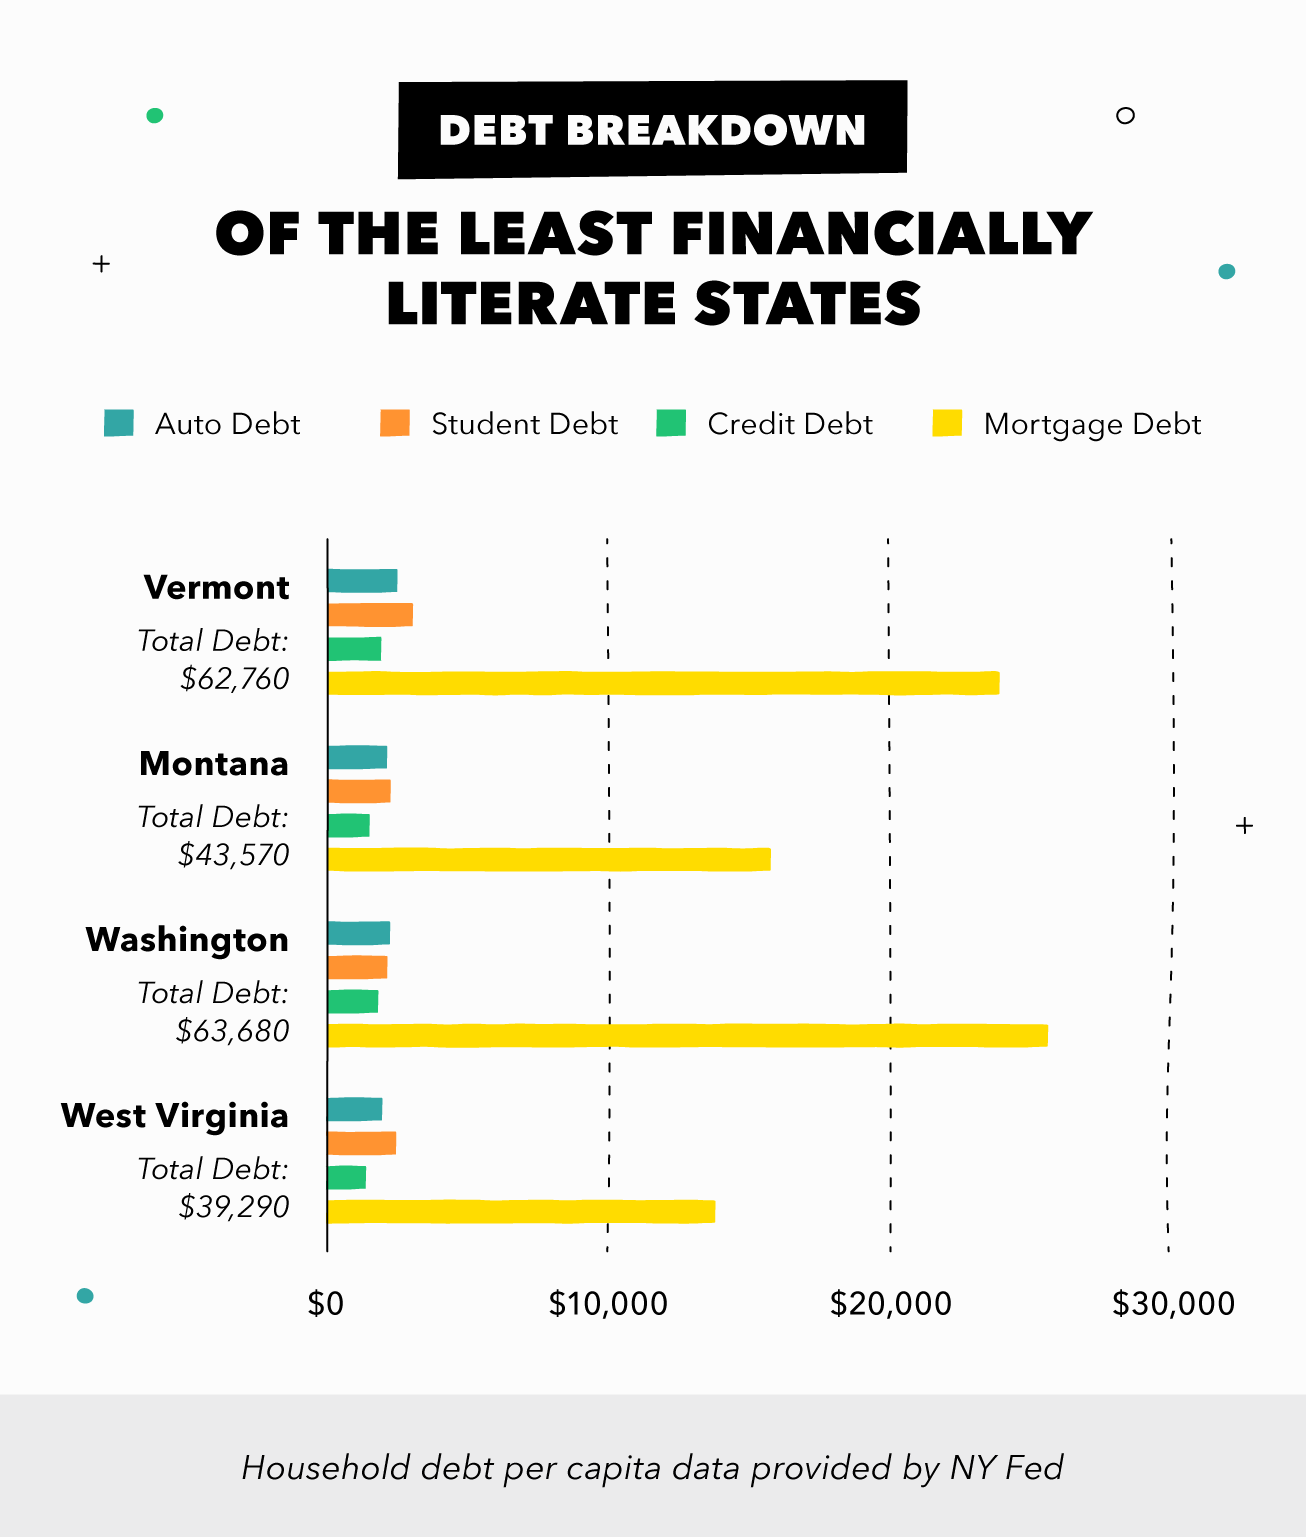 Average debt breakdown by individual in the least financially literate states